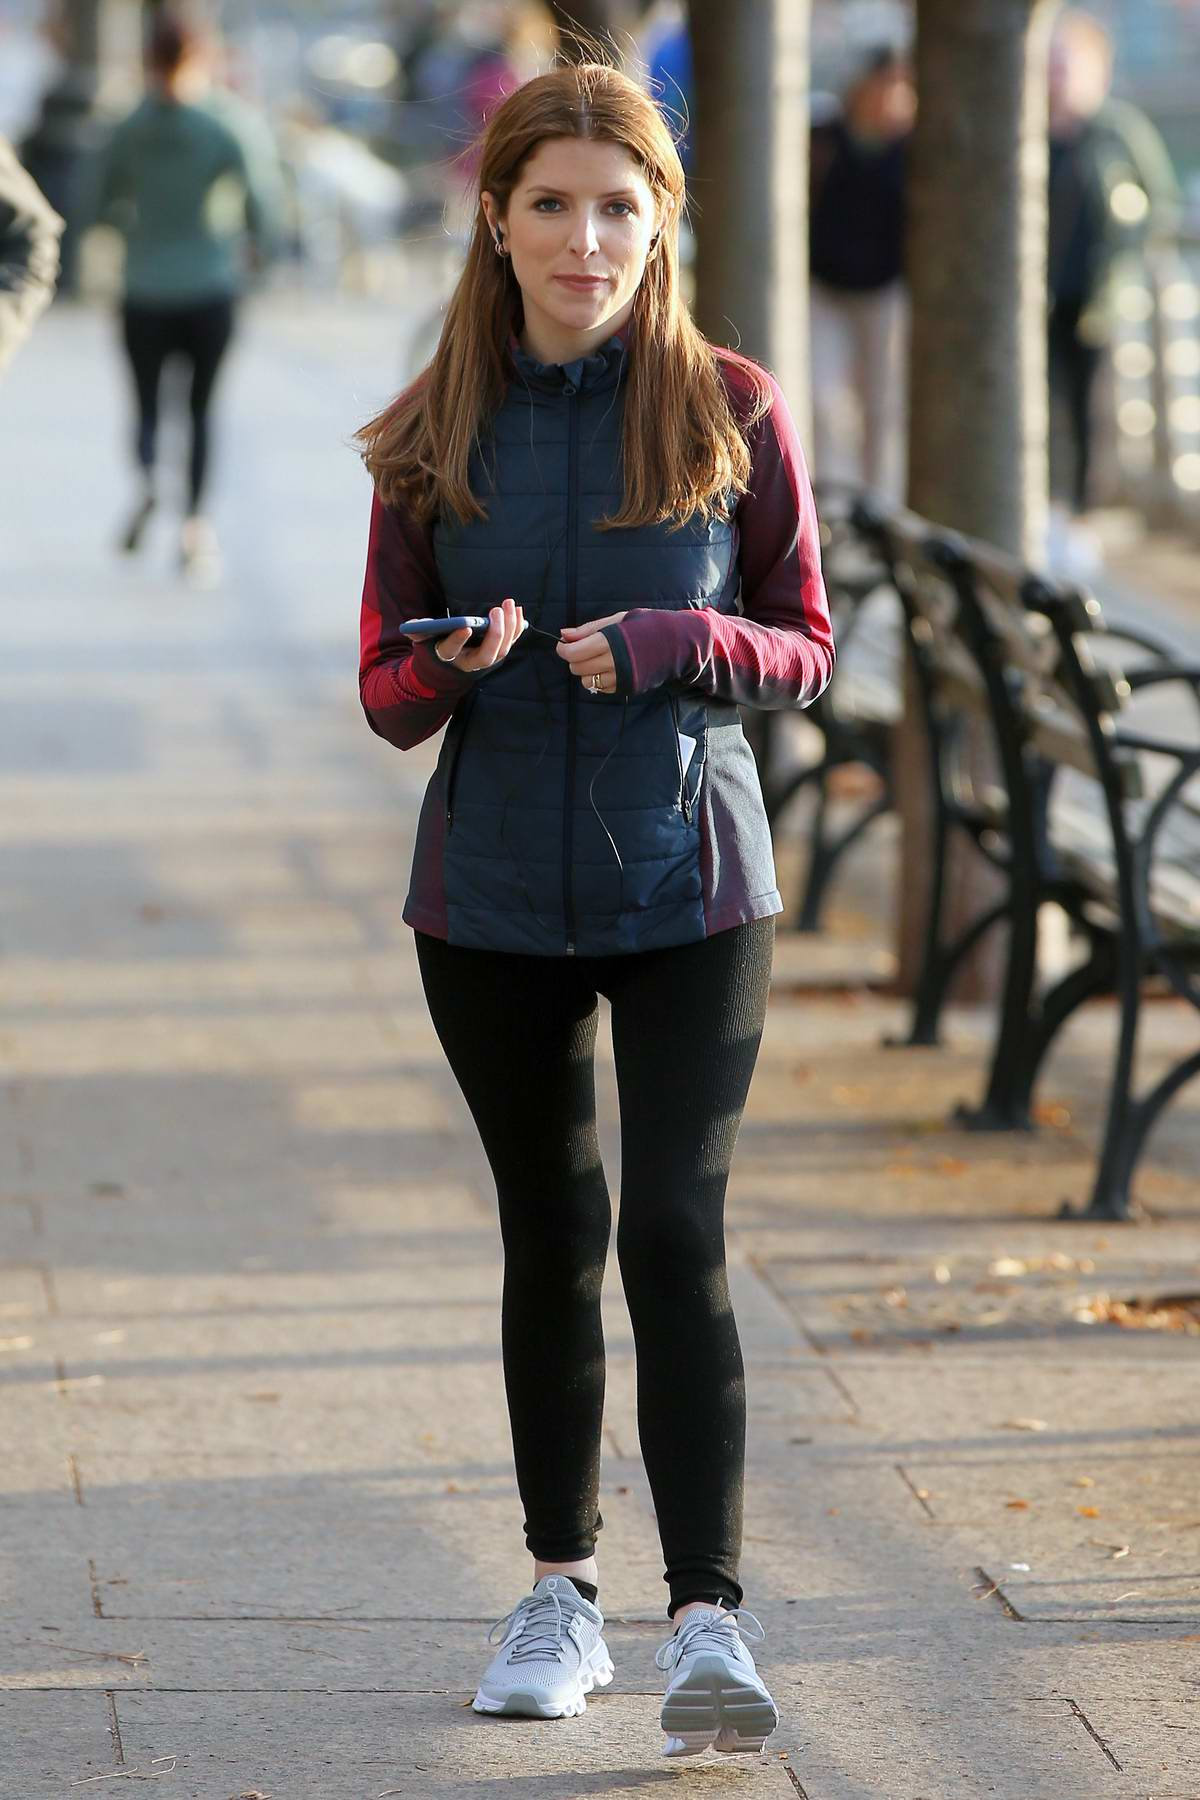 Anna Kendrick spotted on the set of 'Love Life' while filming a jogging scene along the Hudson River in New York City